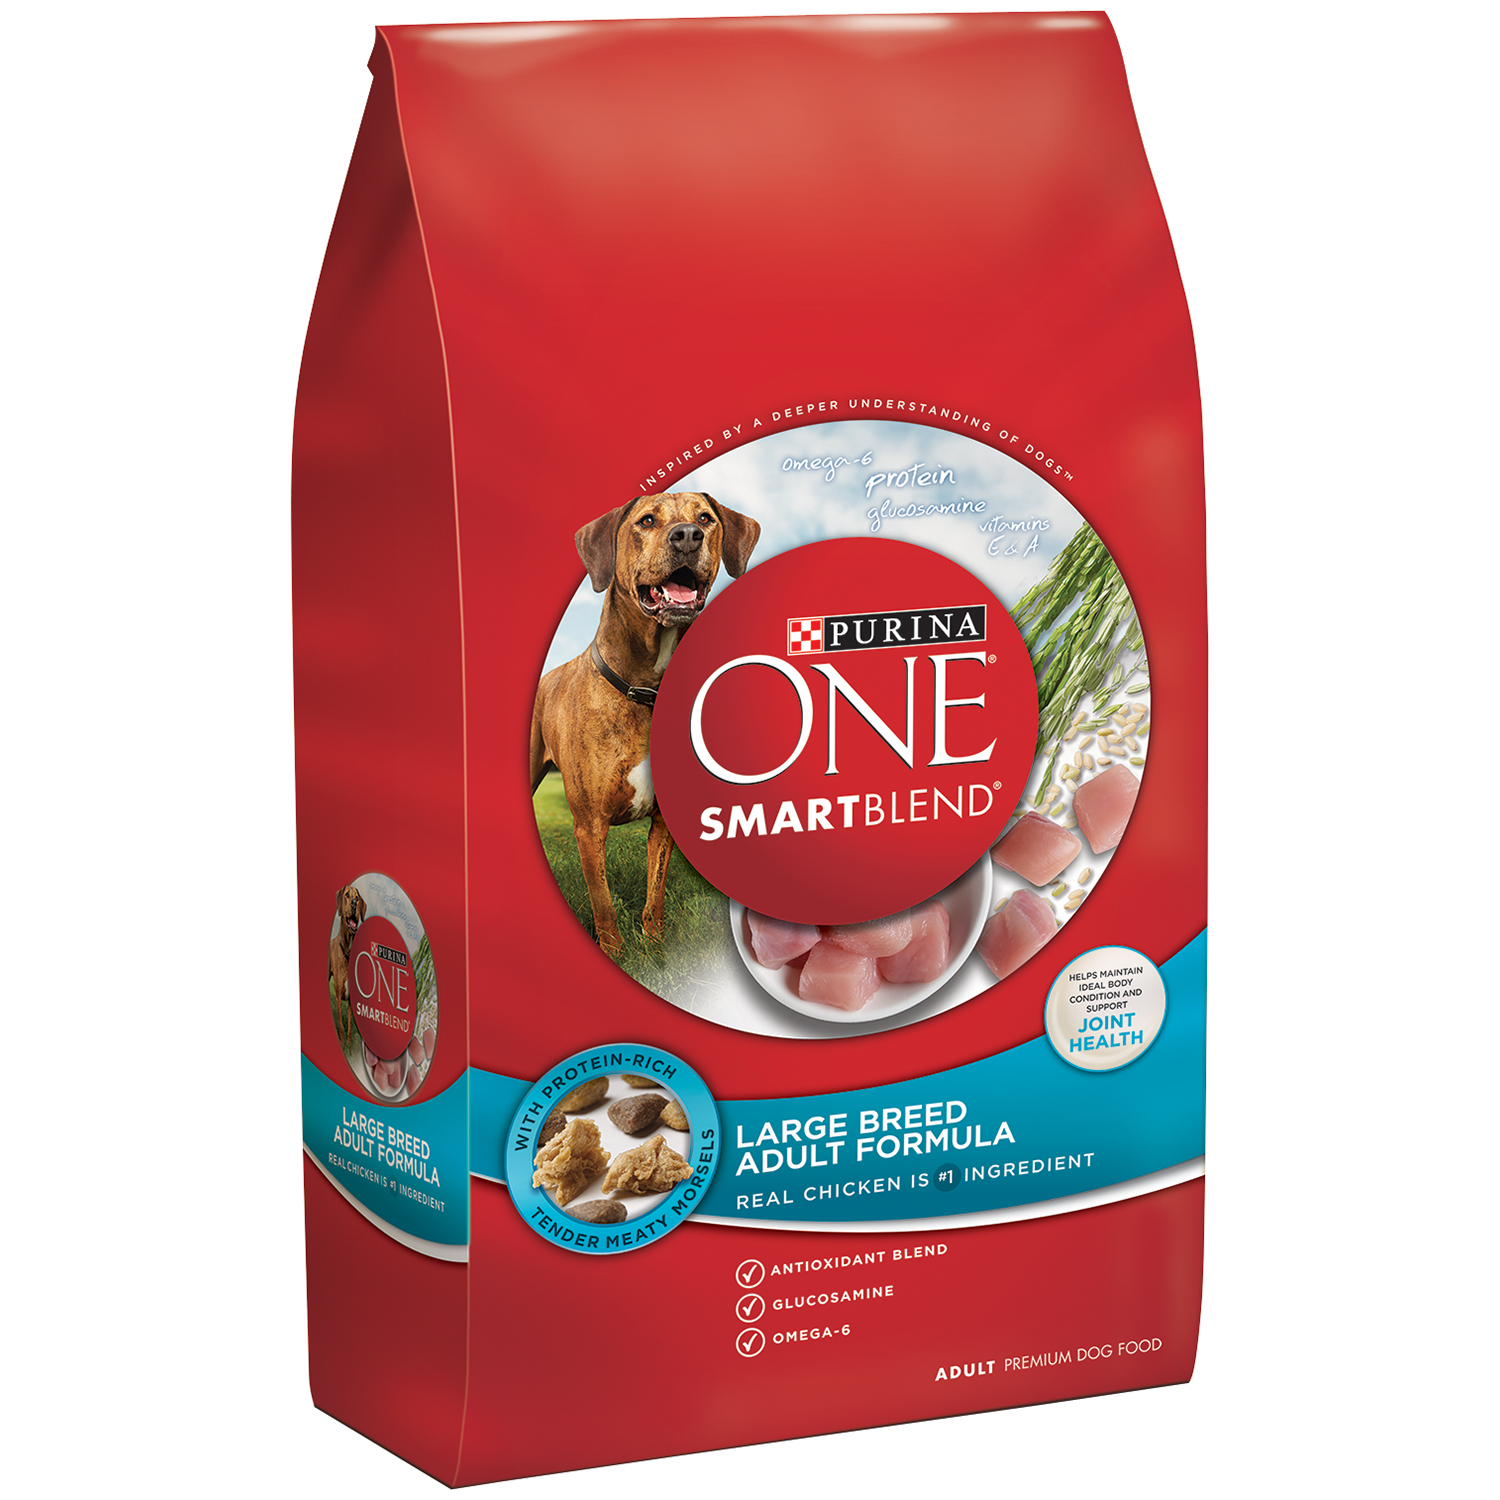 Purina ONE SmartBlend Large Breed Adult Formula Adult Premium Dog Food 31.1 lb. Bag